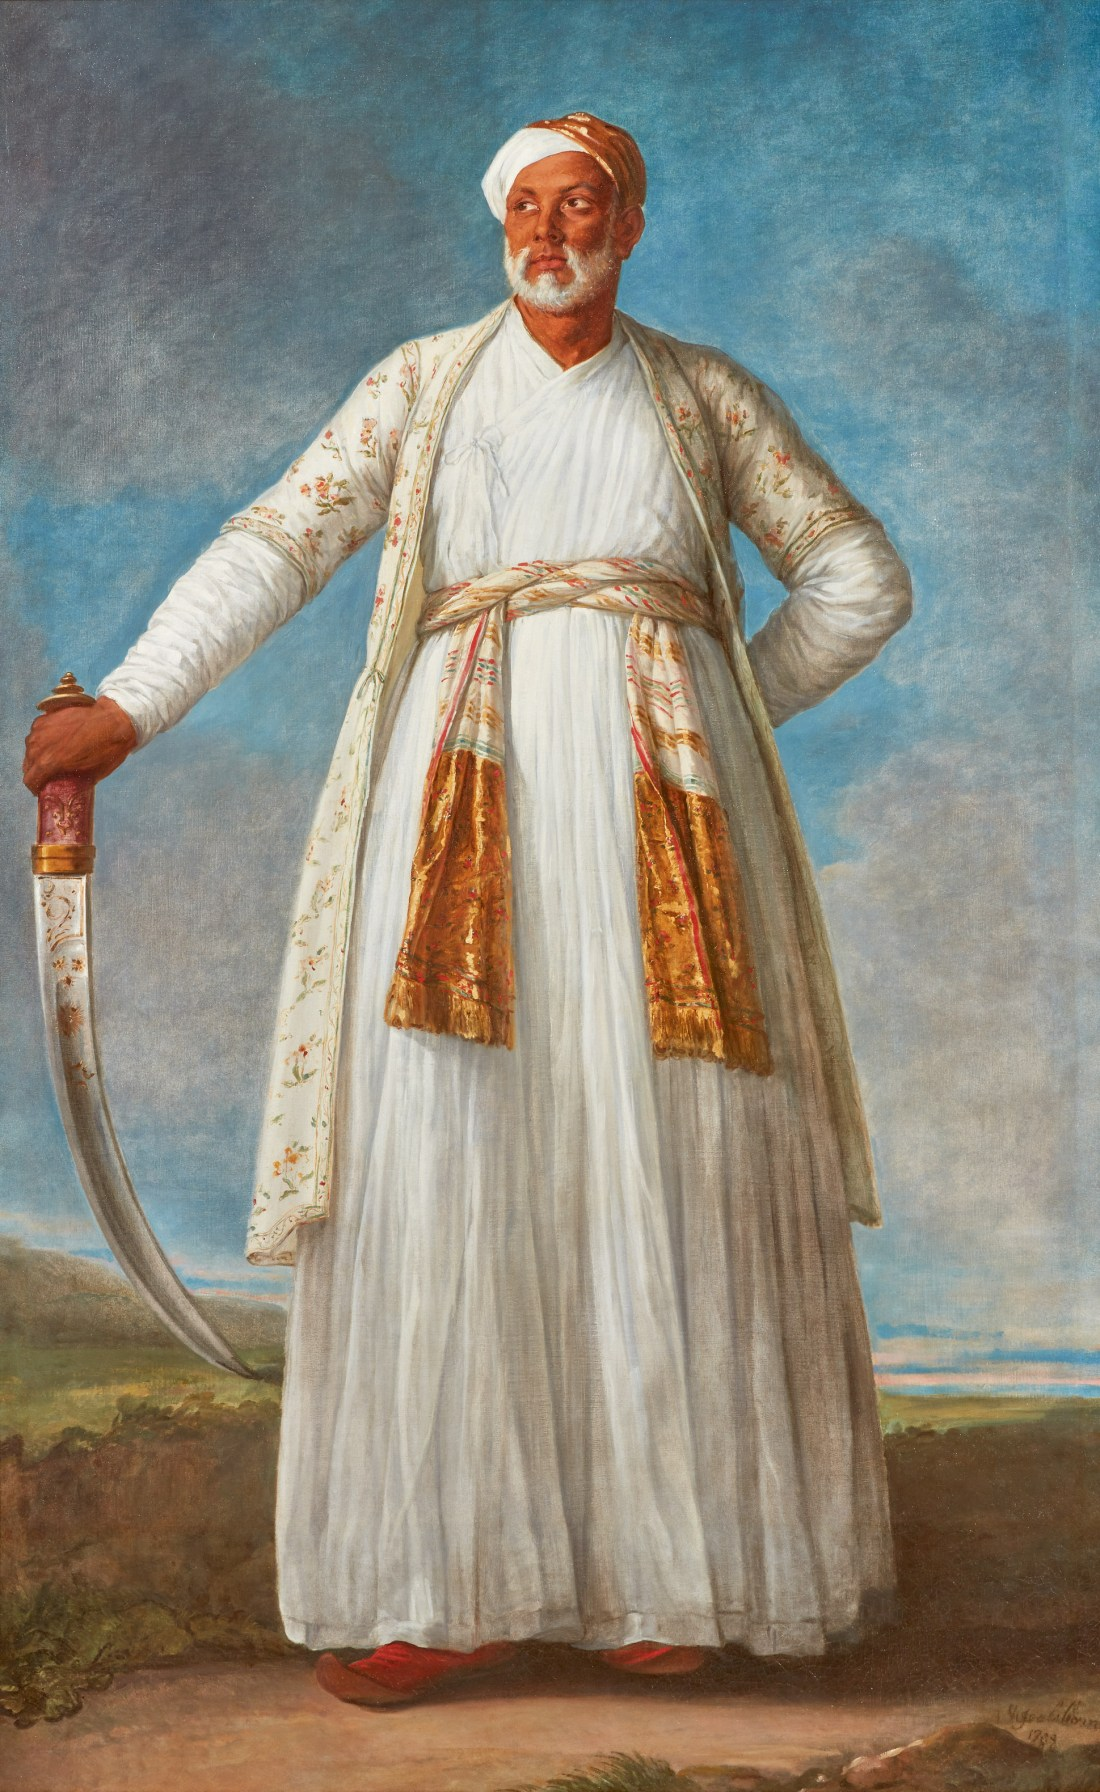 Vigee le Brun's 1788 portrait of Muhammad Dervish Khan depicts him at full length, outdoors, against a clouded blue sky. He's clad mostly in white, and he looks to the right. Long robes reach to his ankles, and a shorter robe, decorated with flowers, covers his upper arms and extends to his knees. He has a length of cloth braided around his waist, acting as a belt. The gold-decorated ends of the cloth drape over his front. He wears a gold and white turban. He rests his right hand on the hilt of a curved sword.